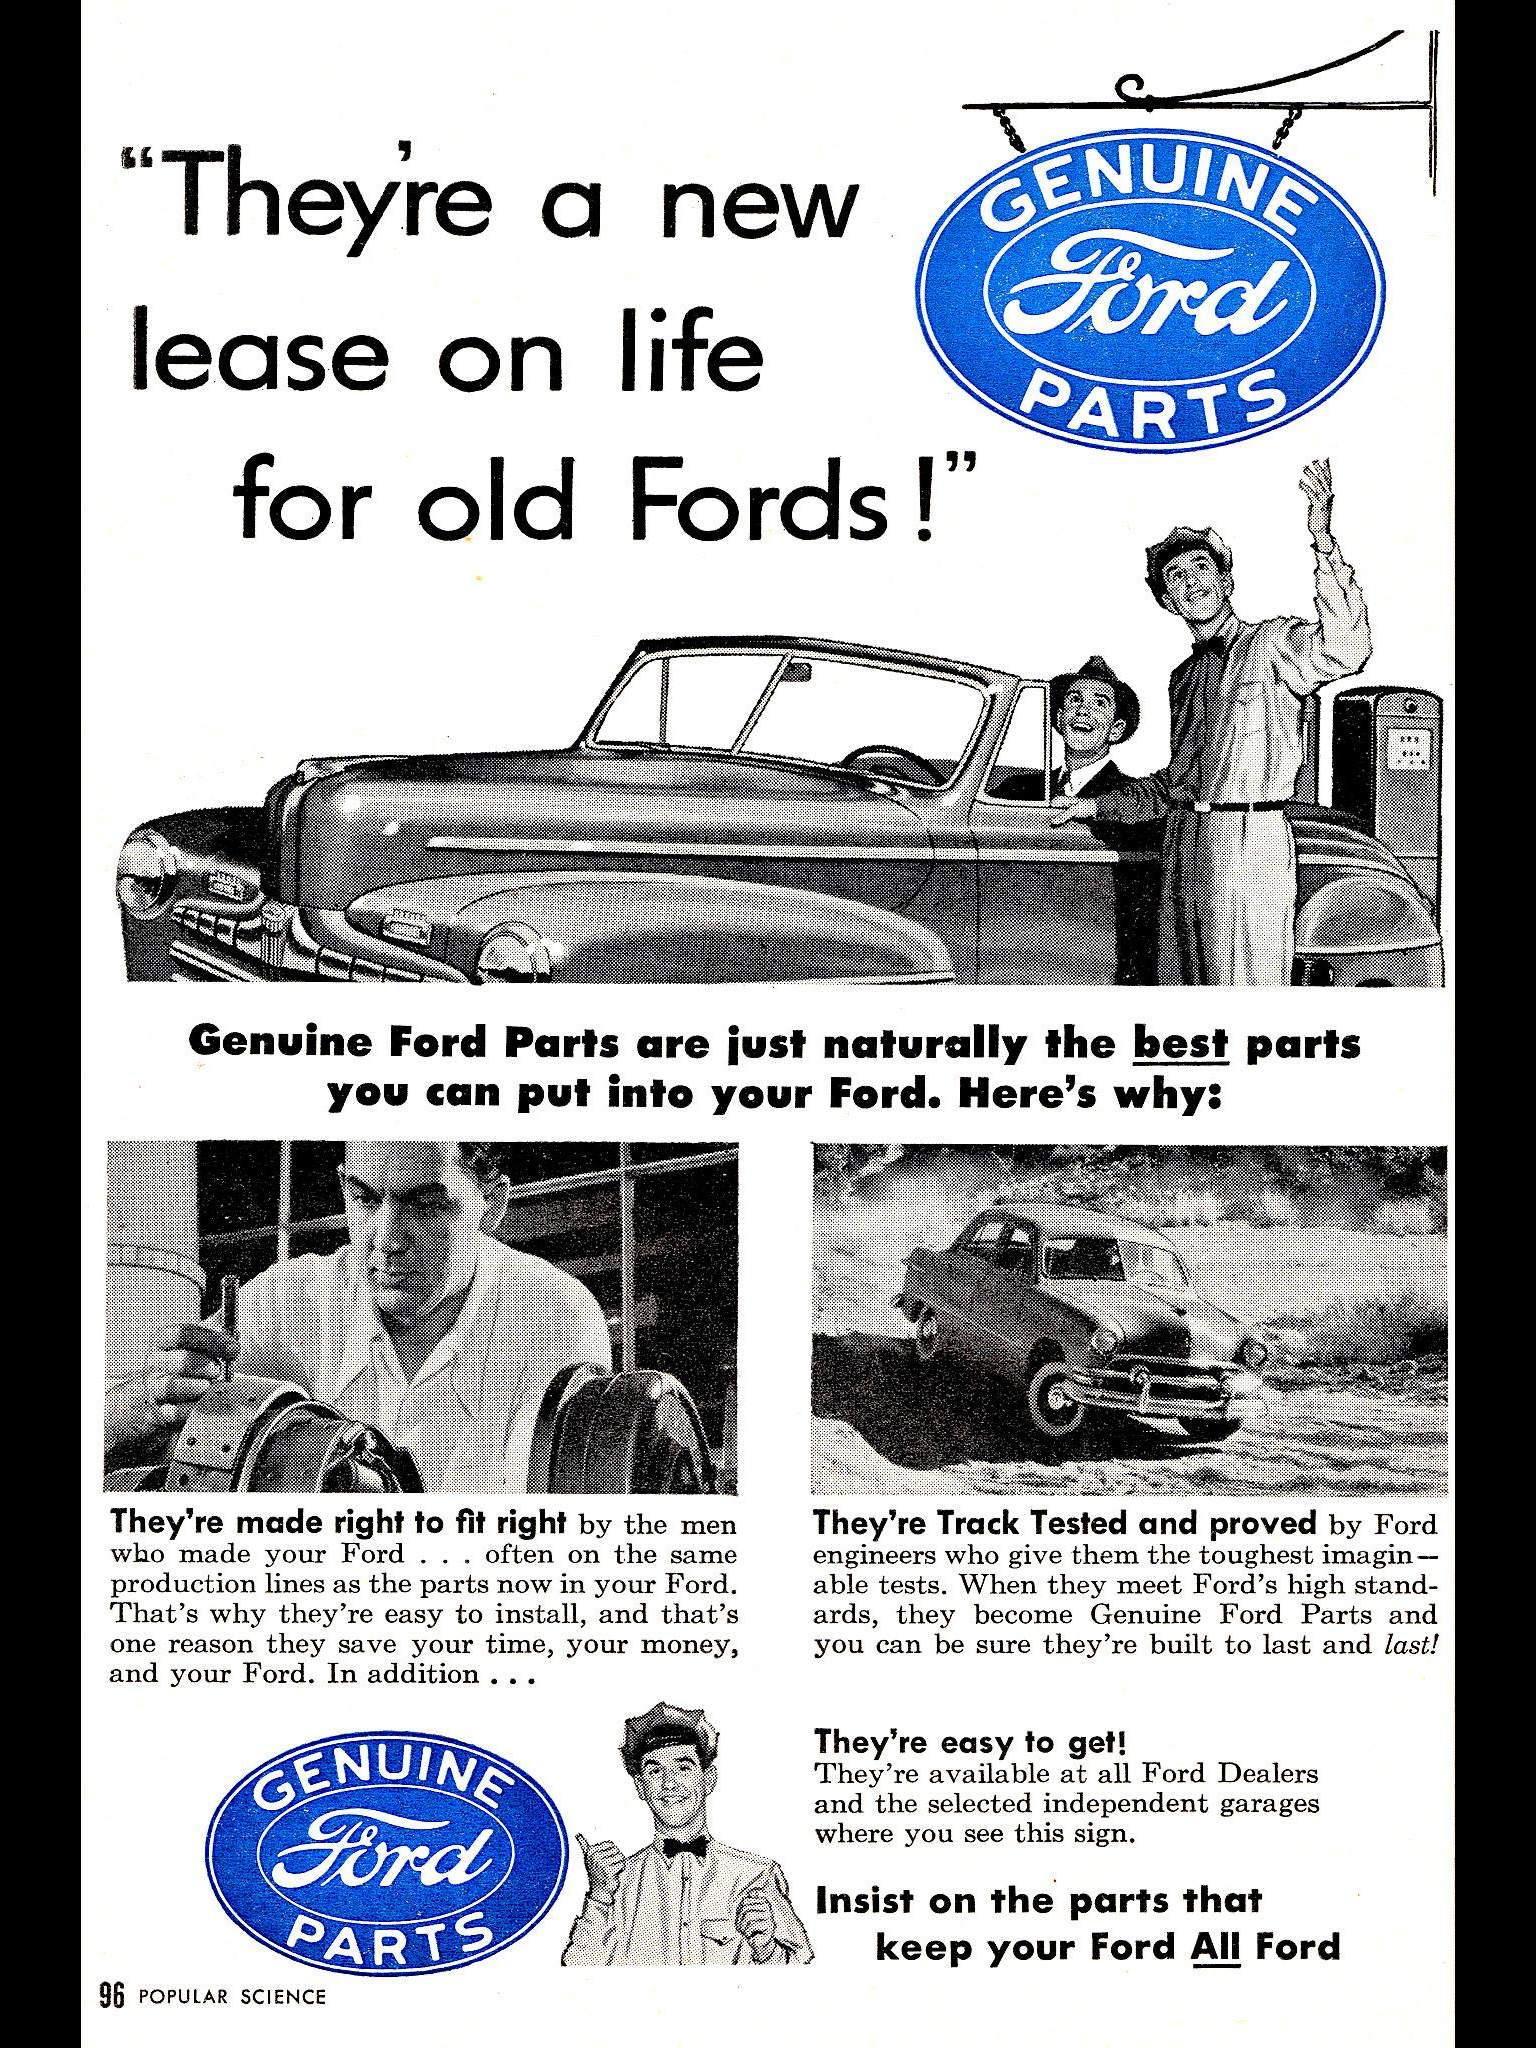 Pin By Mark Crichton On Old Car Ads Ford Parts Old Fords Ford